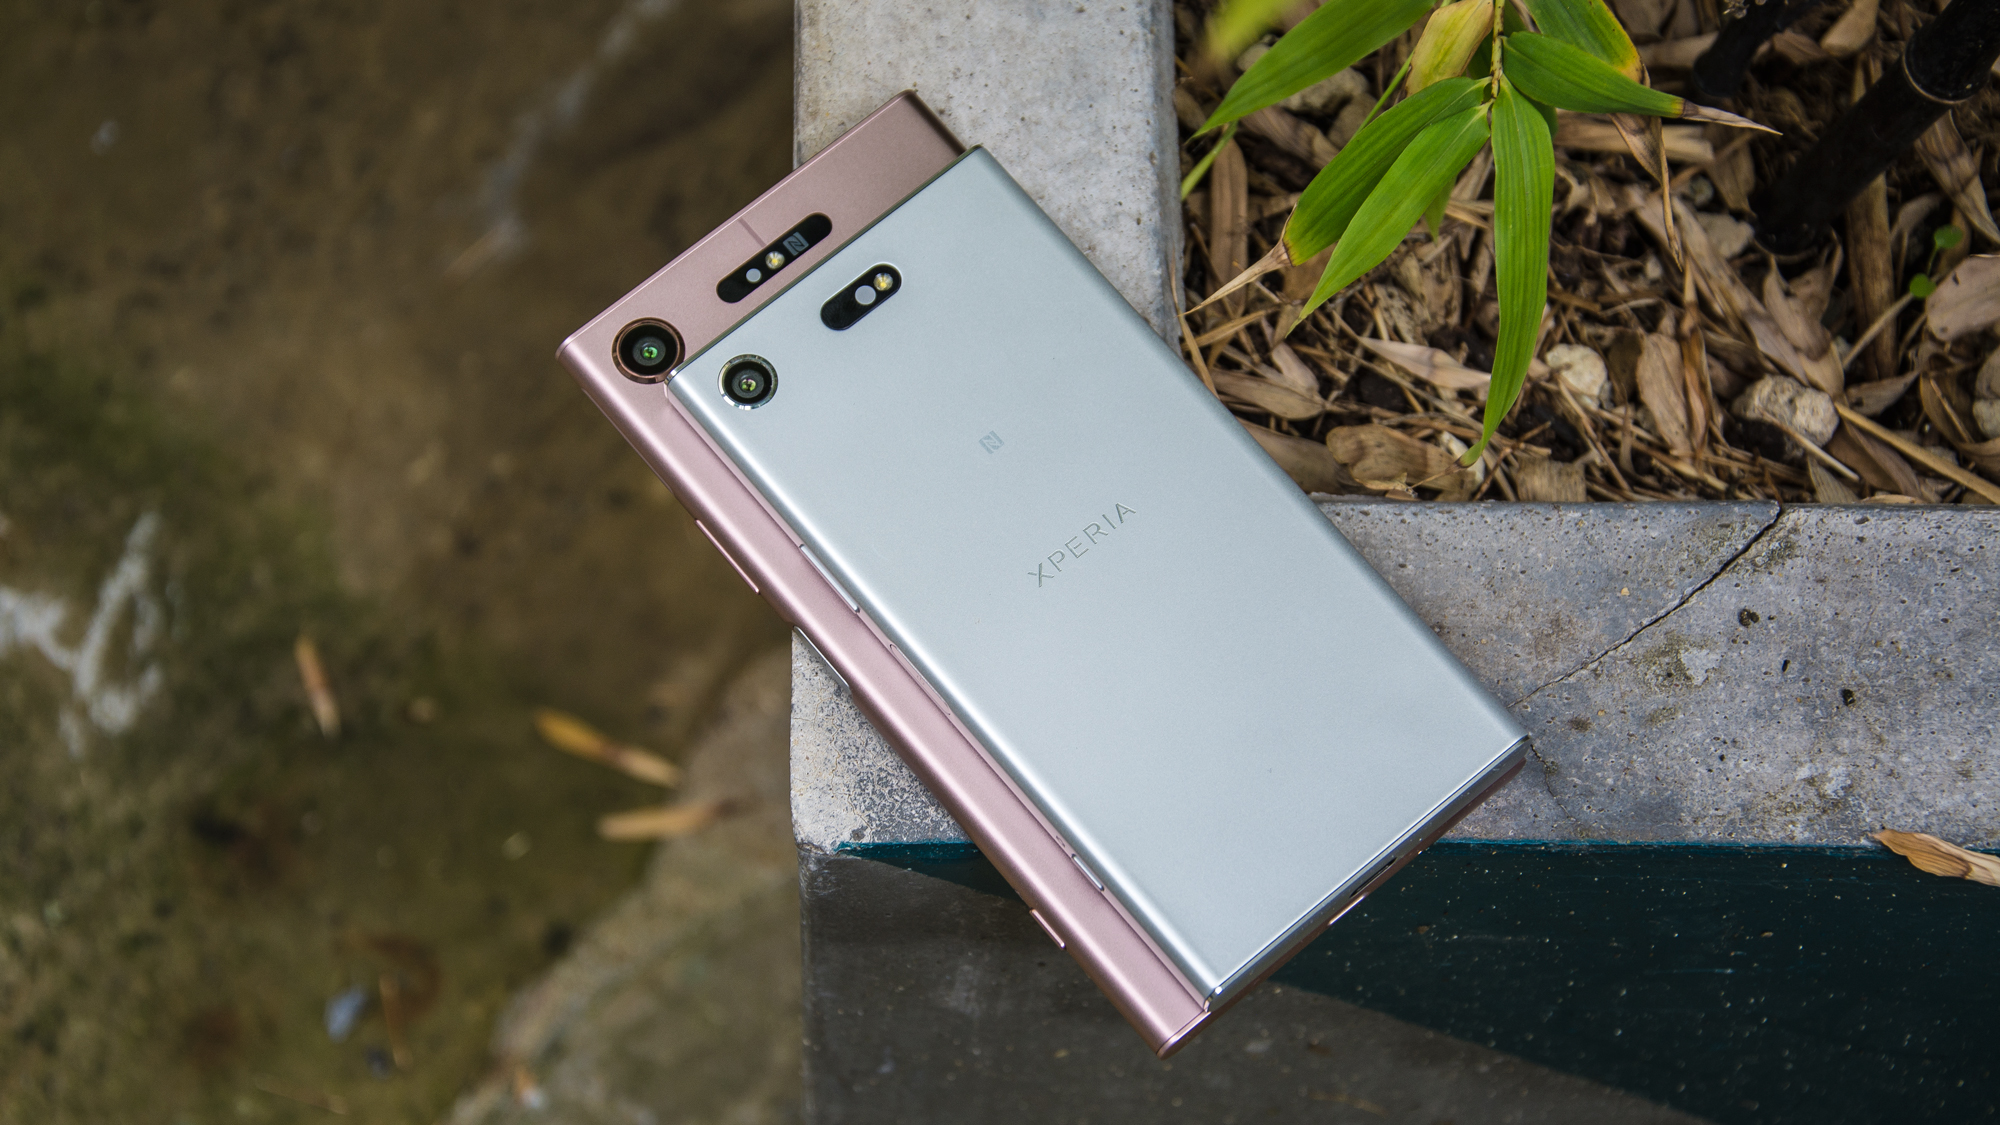 sony zx1 compact. sony xperia xz1 compact review: a mini handset with flagship features | expert reviews zx1 e